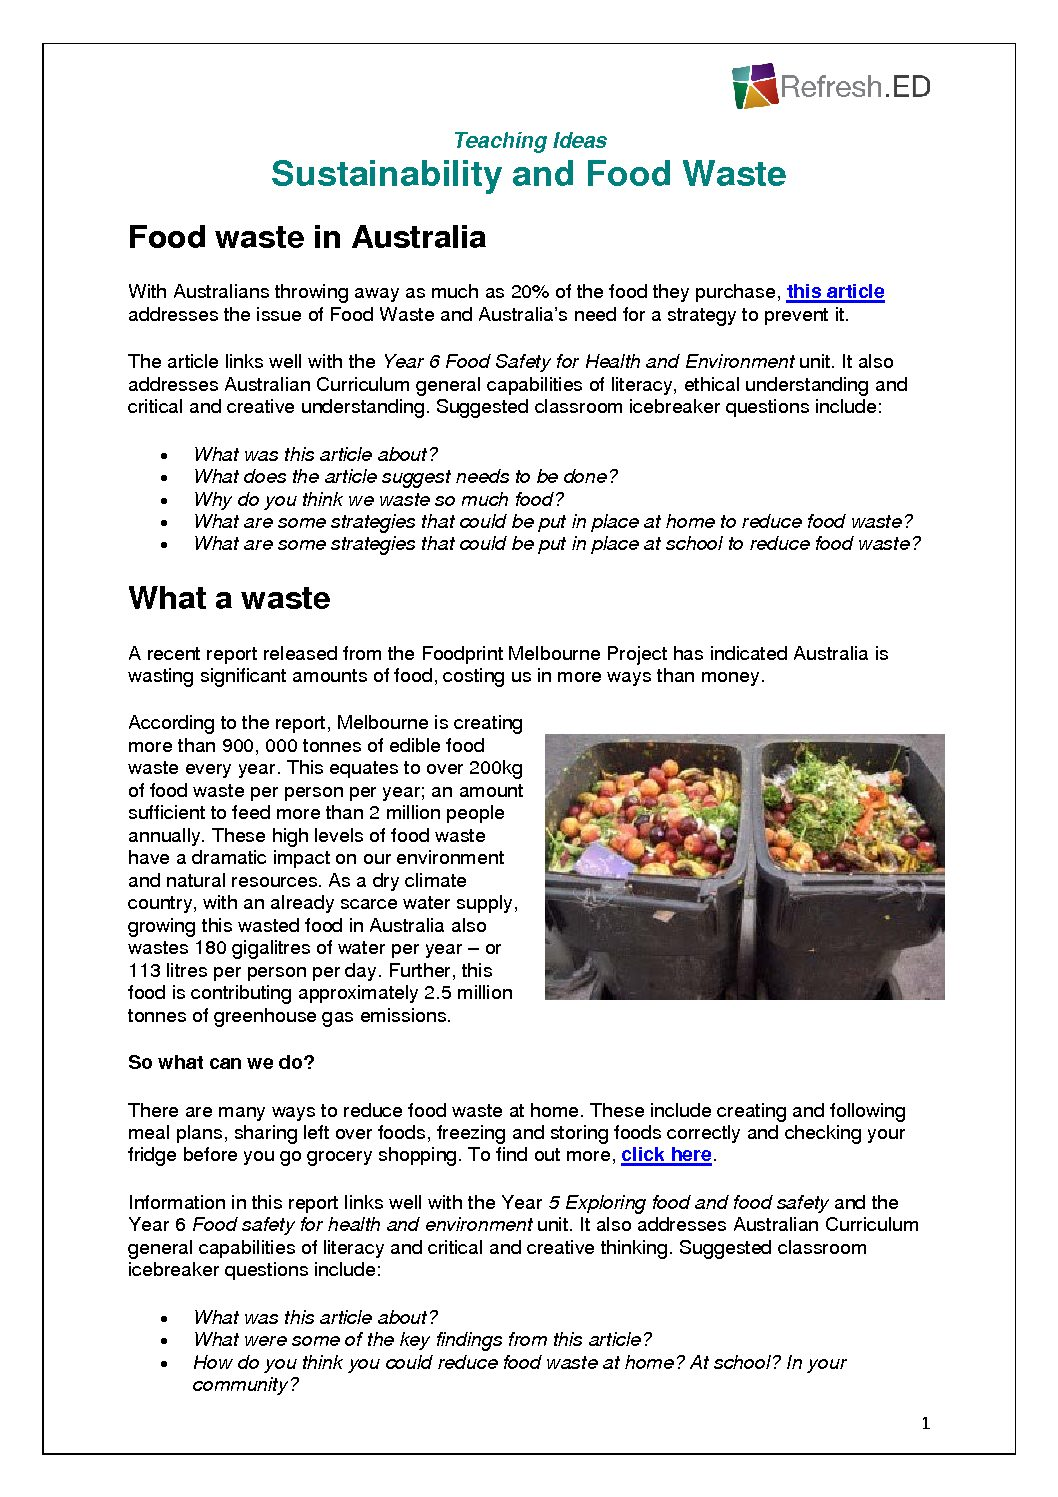 Sustainability and Food Waste - Refresh ED